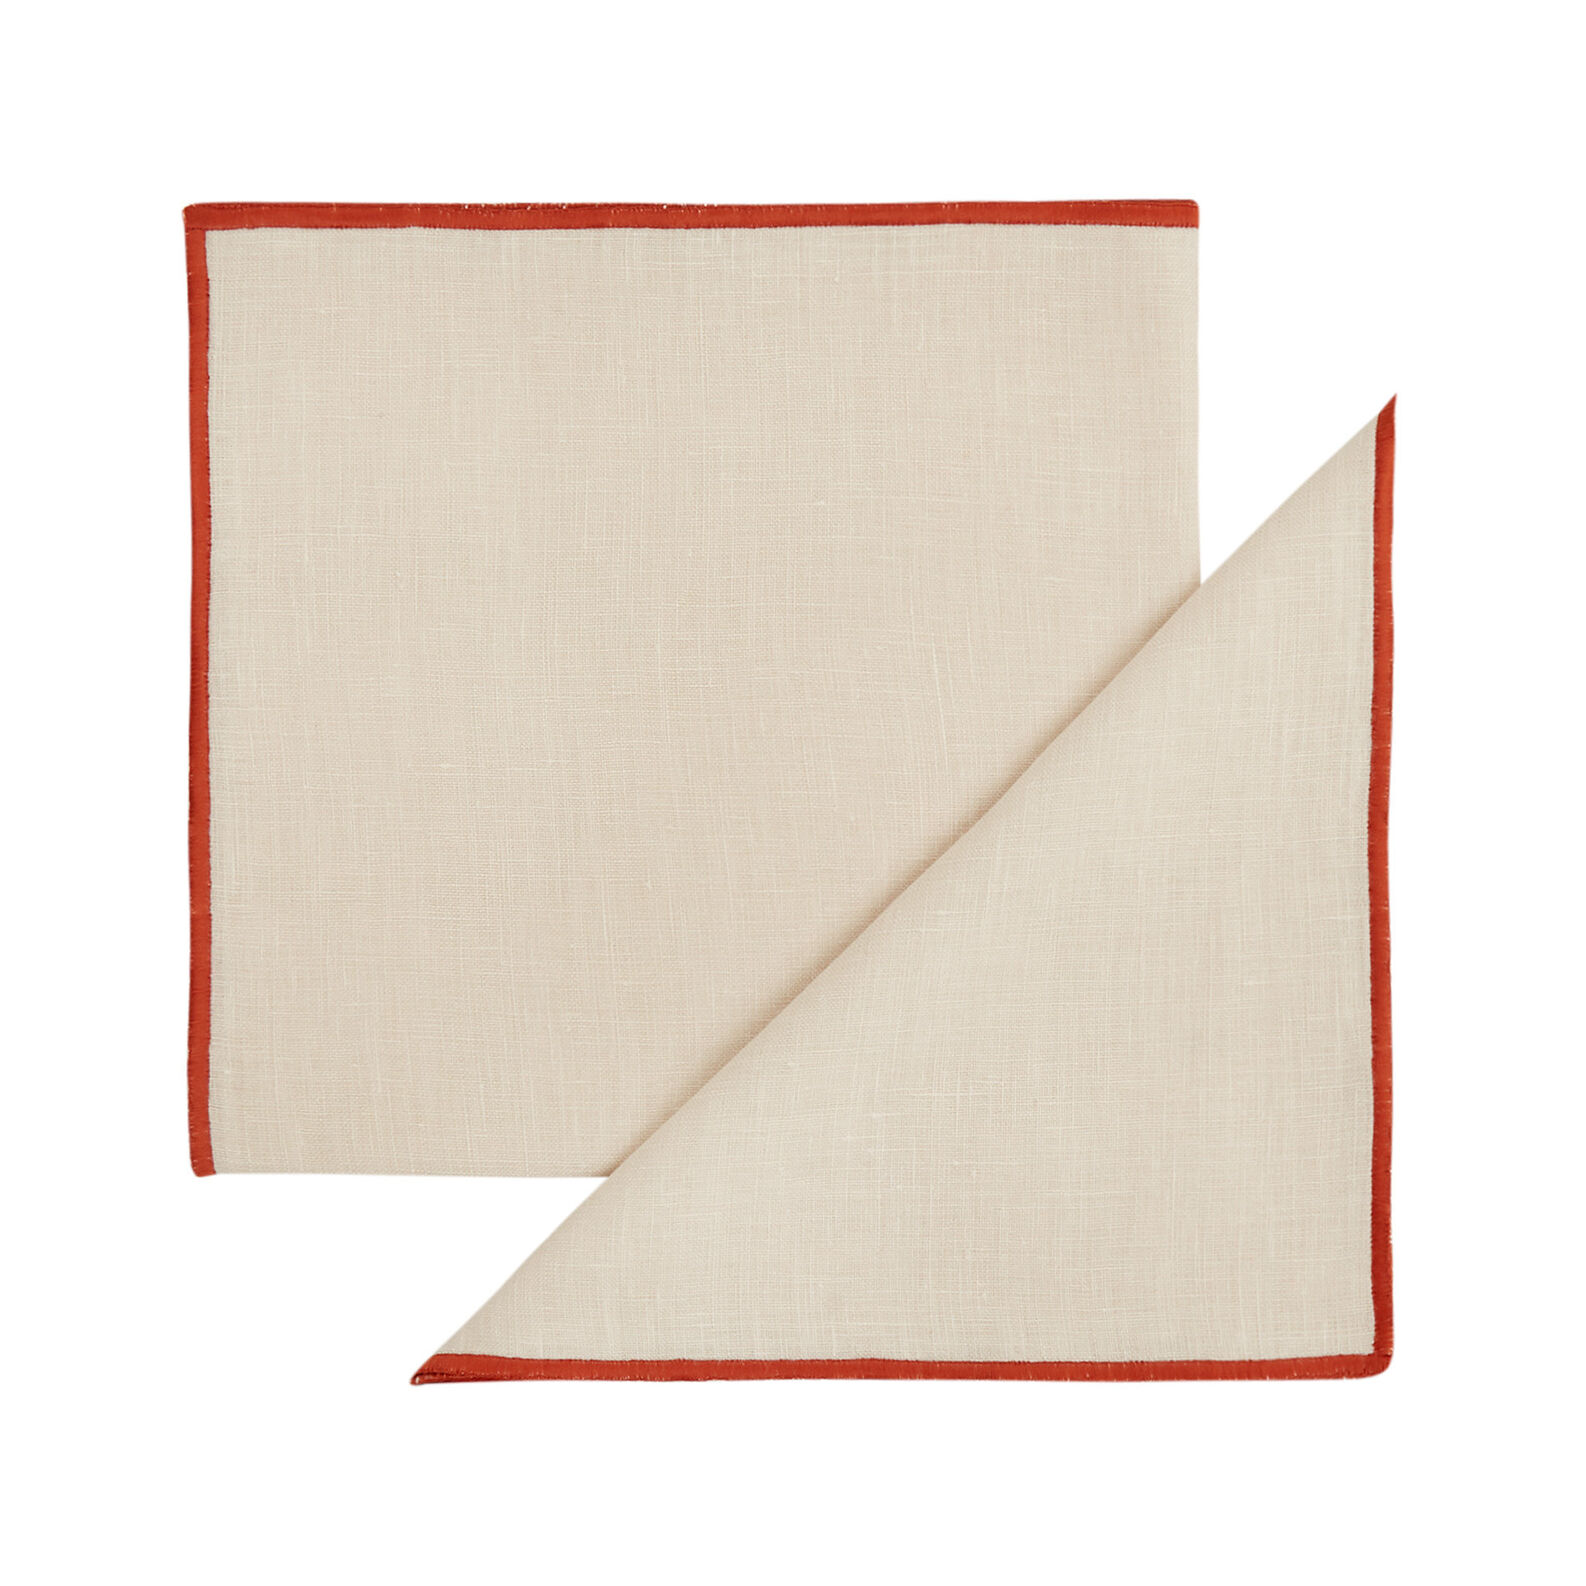 Set of 2 pure linen napkins